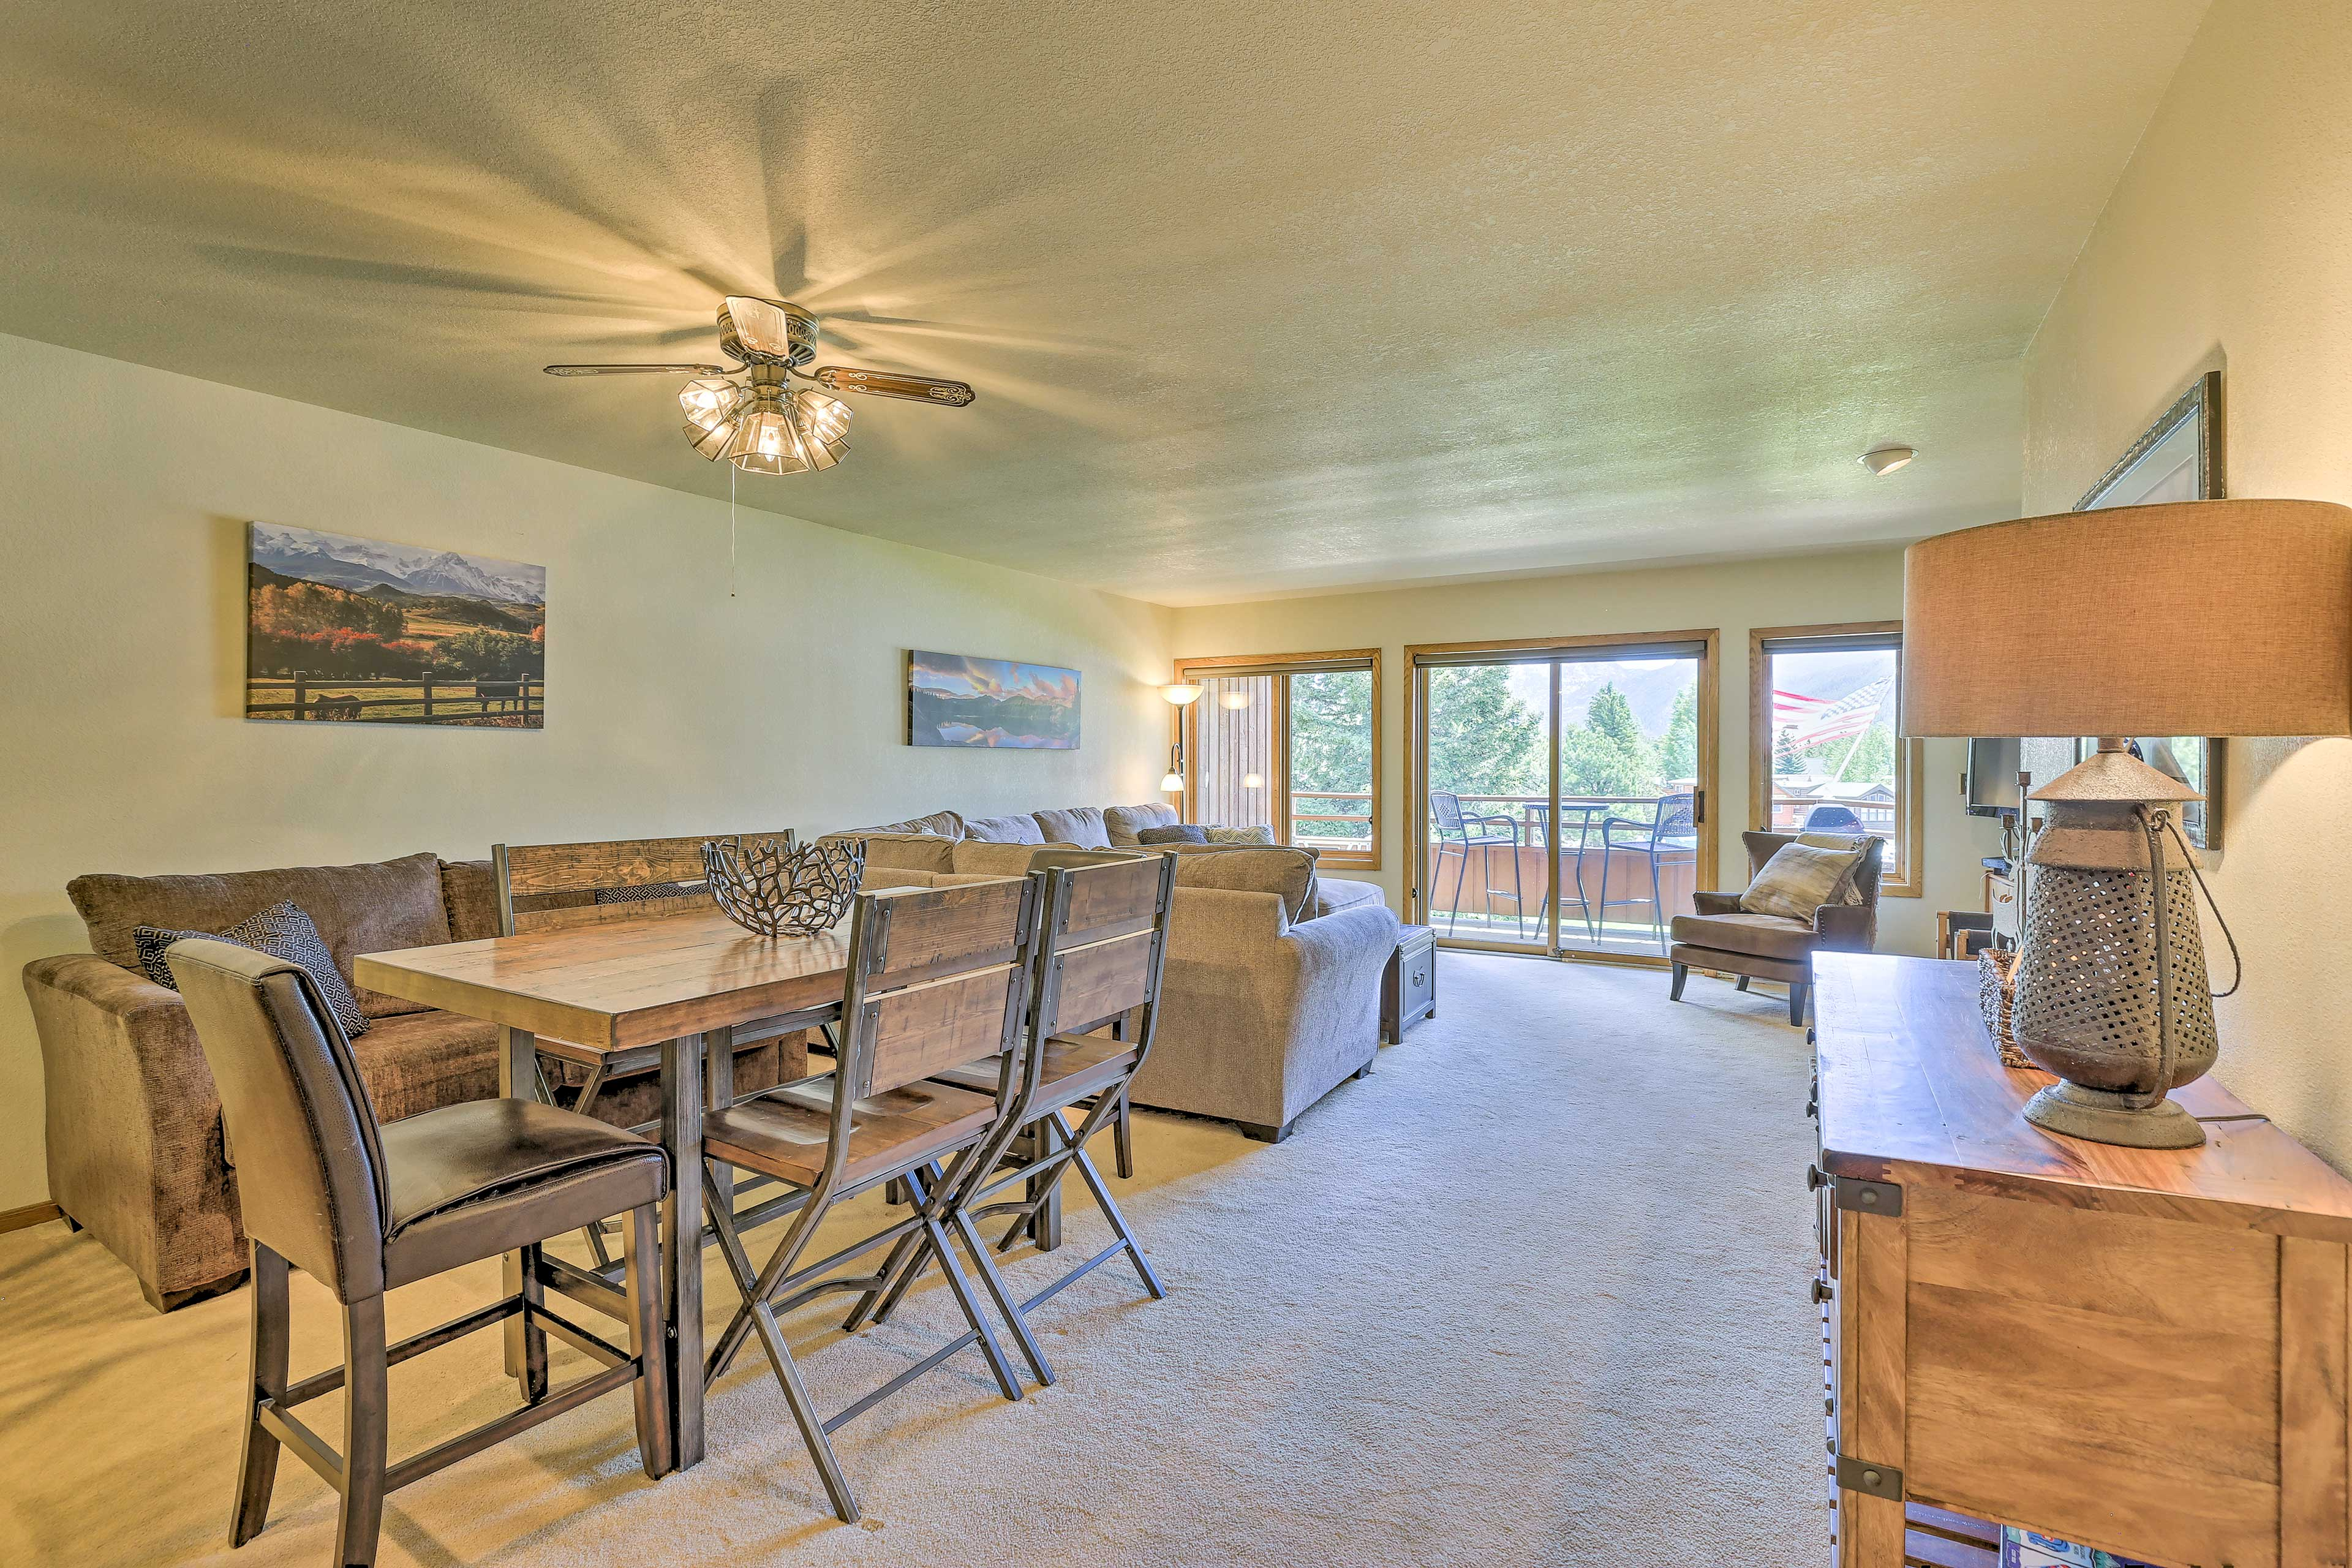 Enjoy home-cooked meals around the dining table with seating for 6.